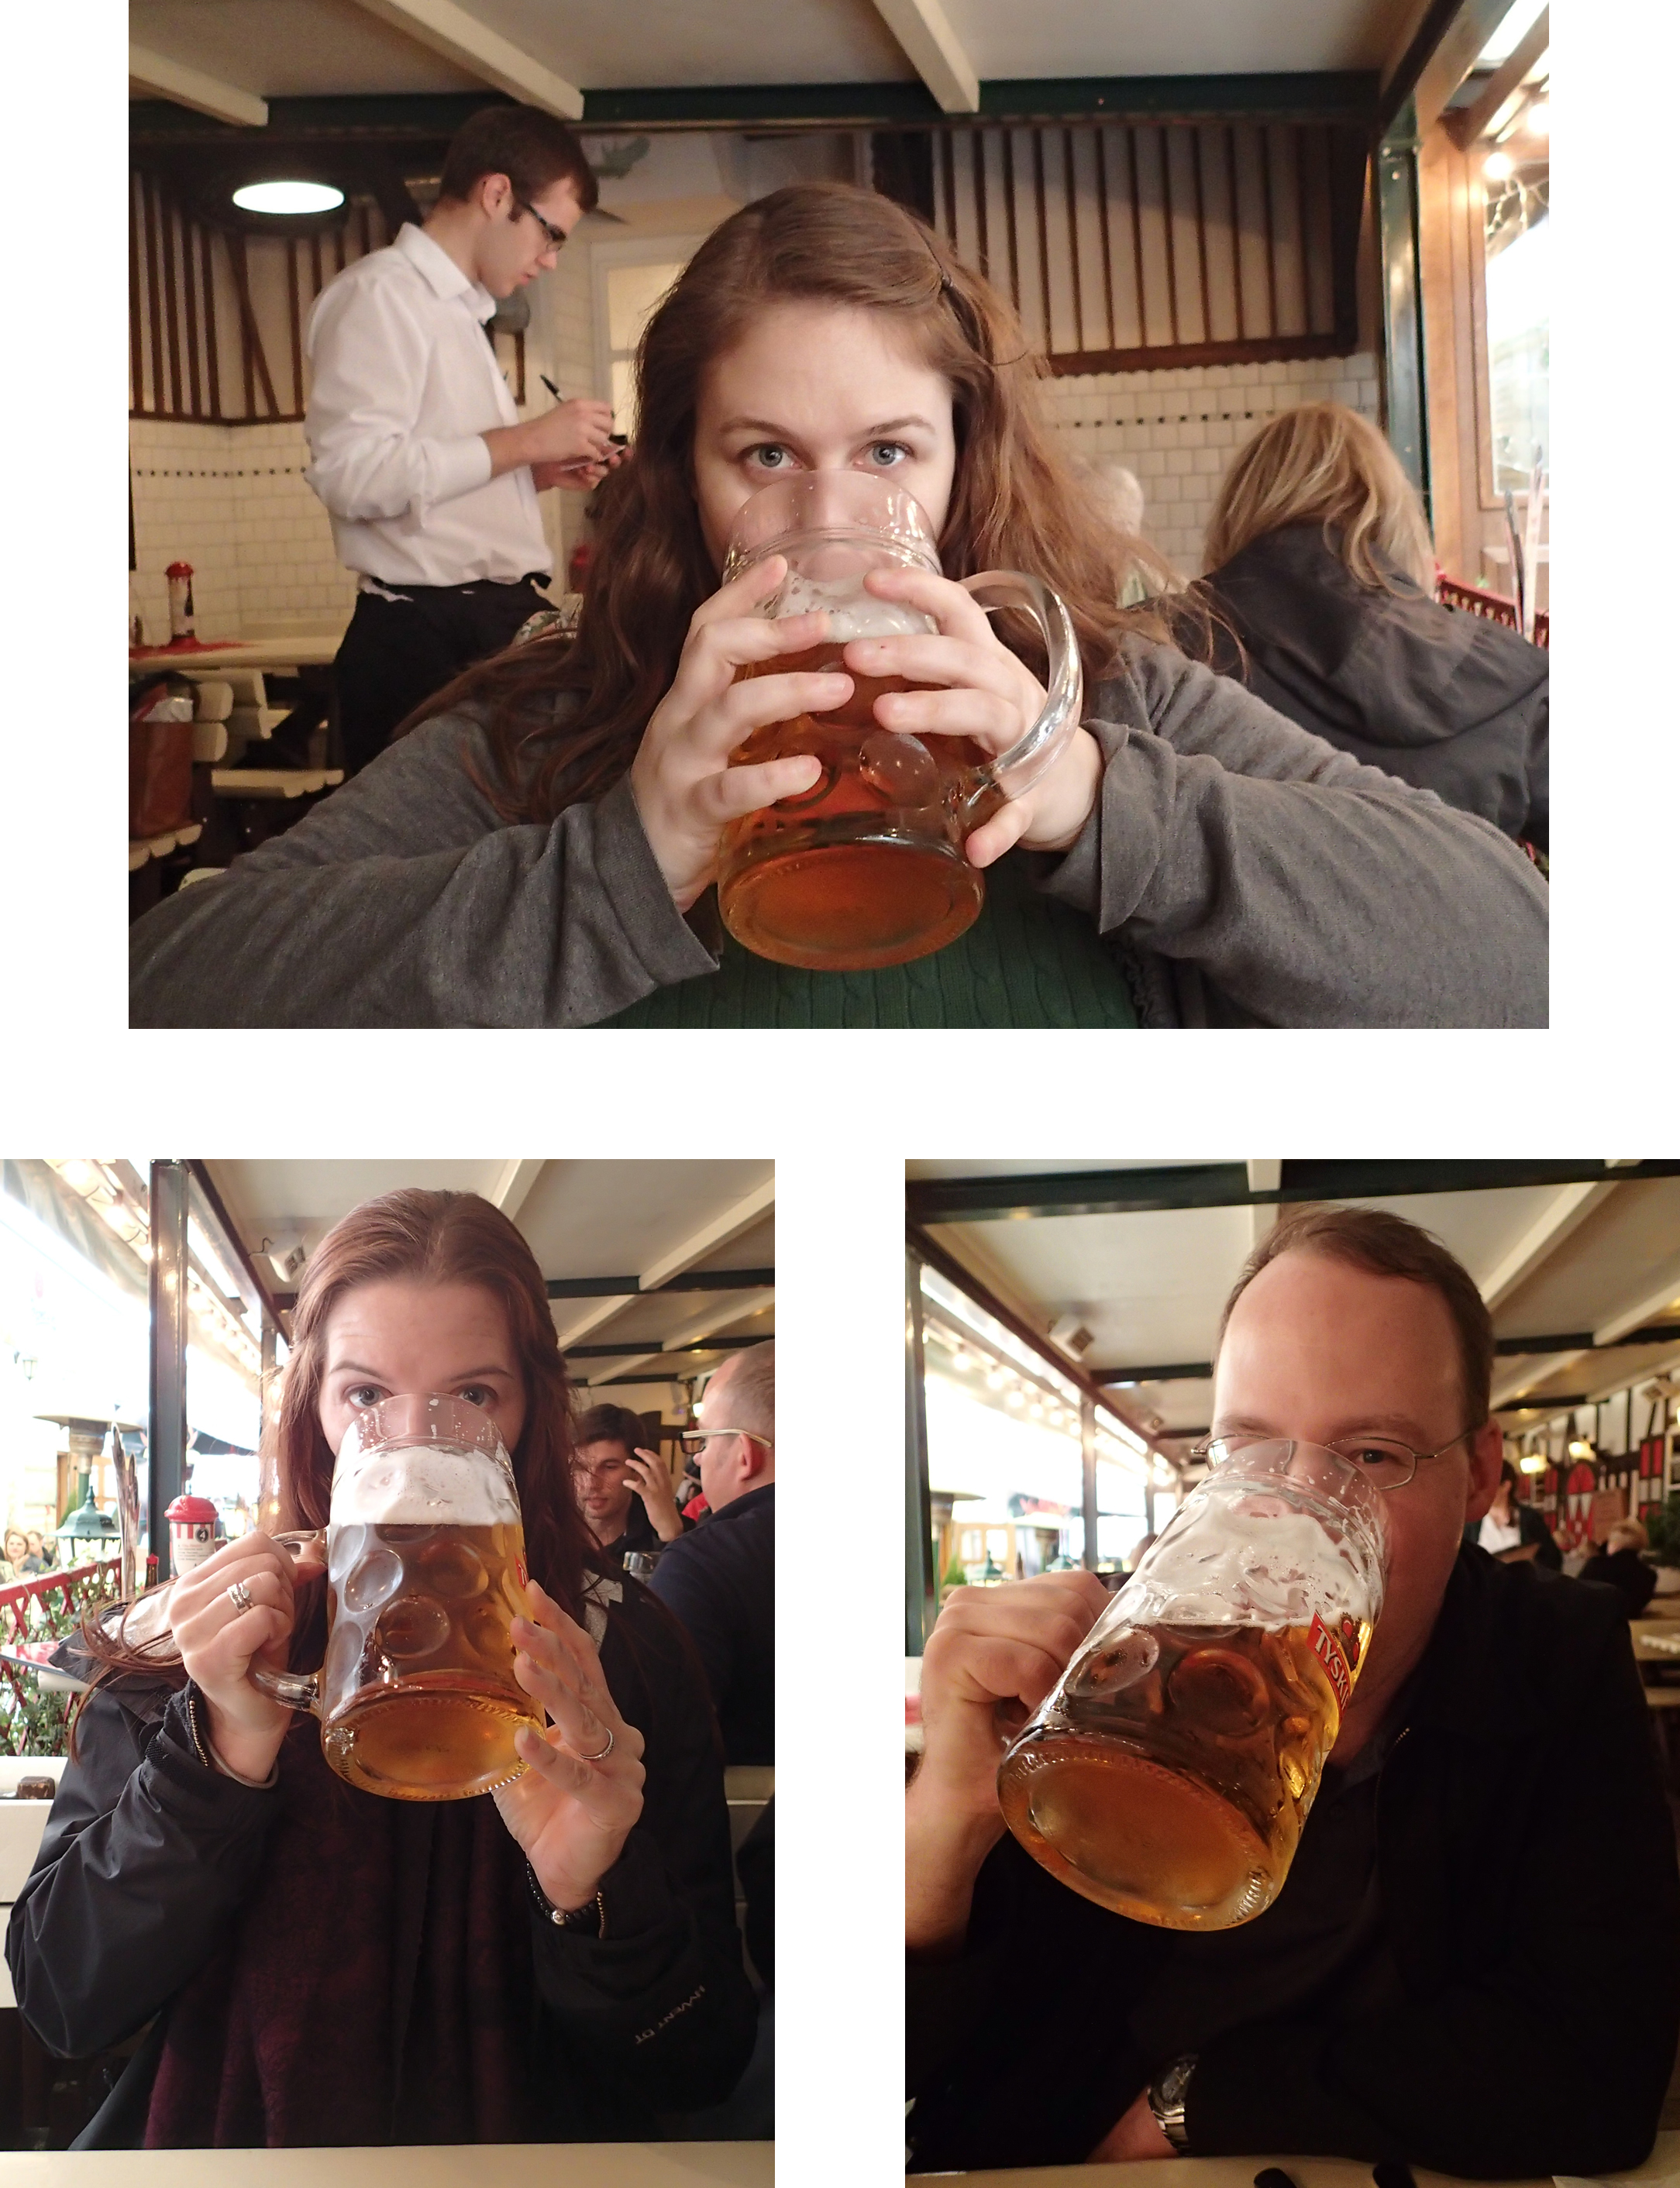 From the top, that's me, my sister-in-law, Karyn and my brother drinking a LITER of Tyskie Książęce Zlote Pszeniczne in the biggest beer mugs we had ever seen. The mugs were so large that Karyn and I needed to hold them with two hands.  (A delicious hefeweizen, but that's a little more than a freakin' quart of beer each!)